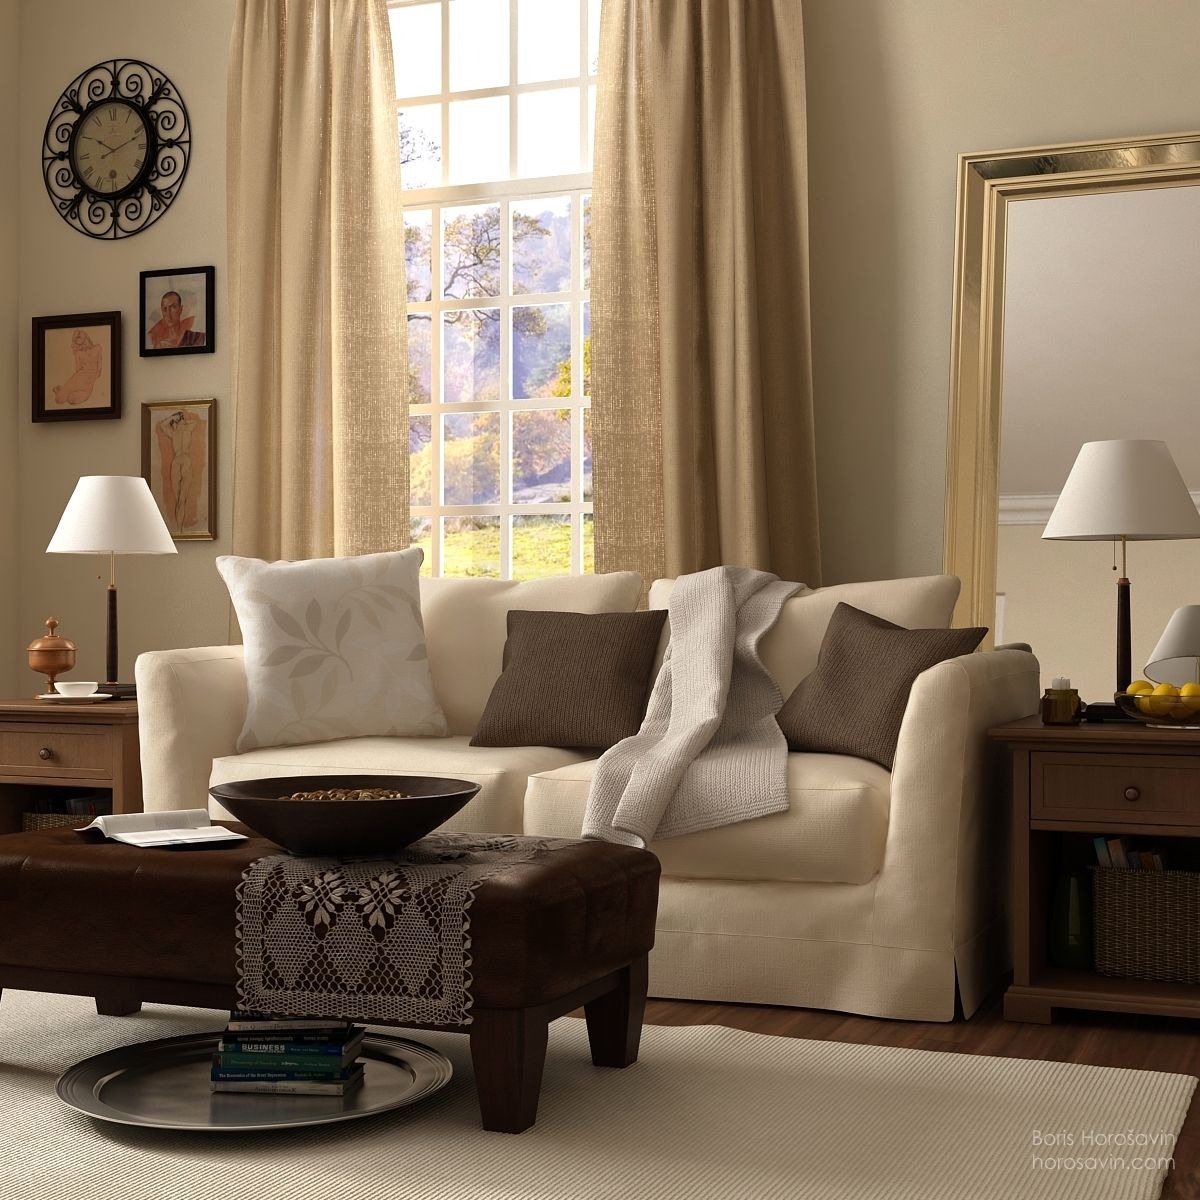 small living room ideas - Google Search (With images ...